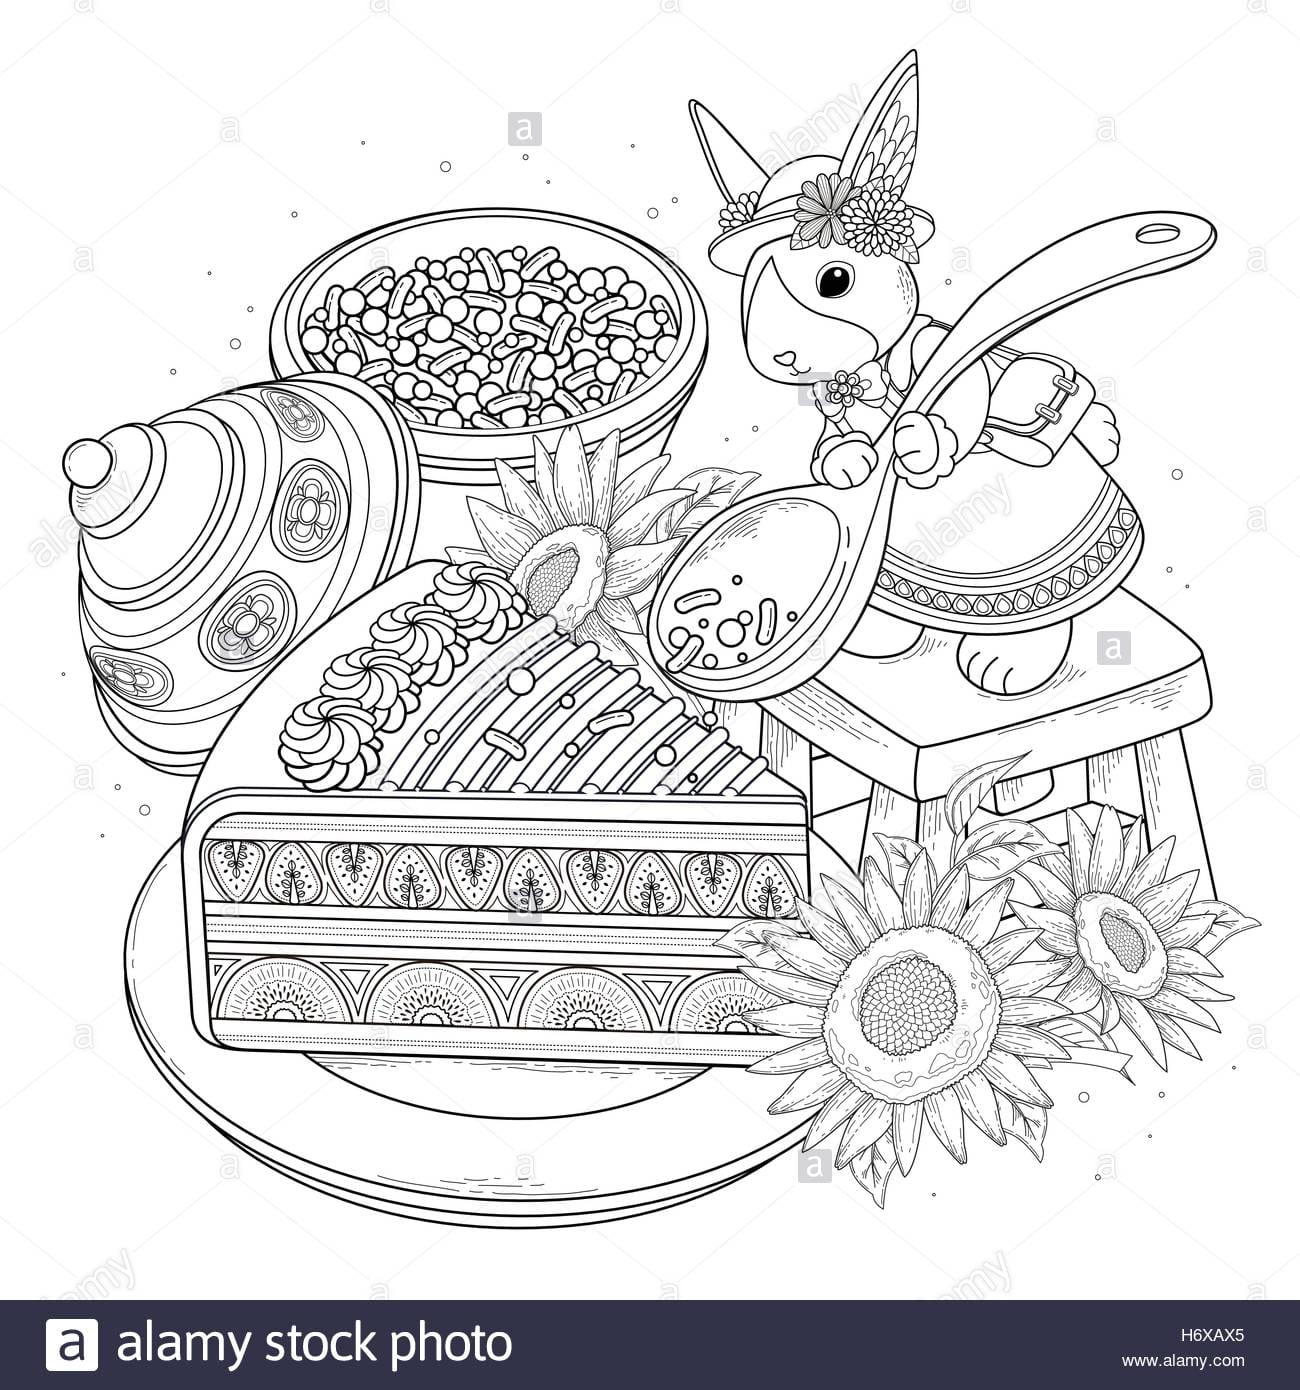 Pastries Adult Coloring Page, Delicious Snacks Page For Coloring